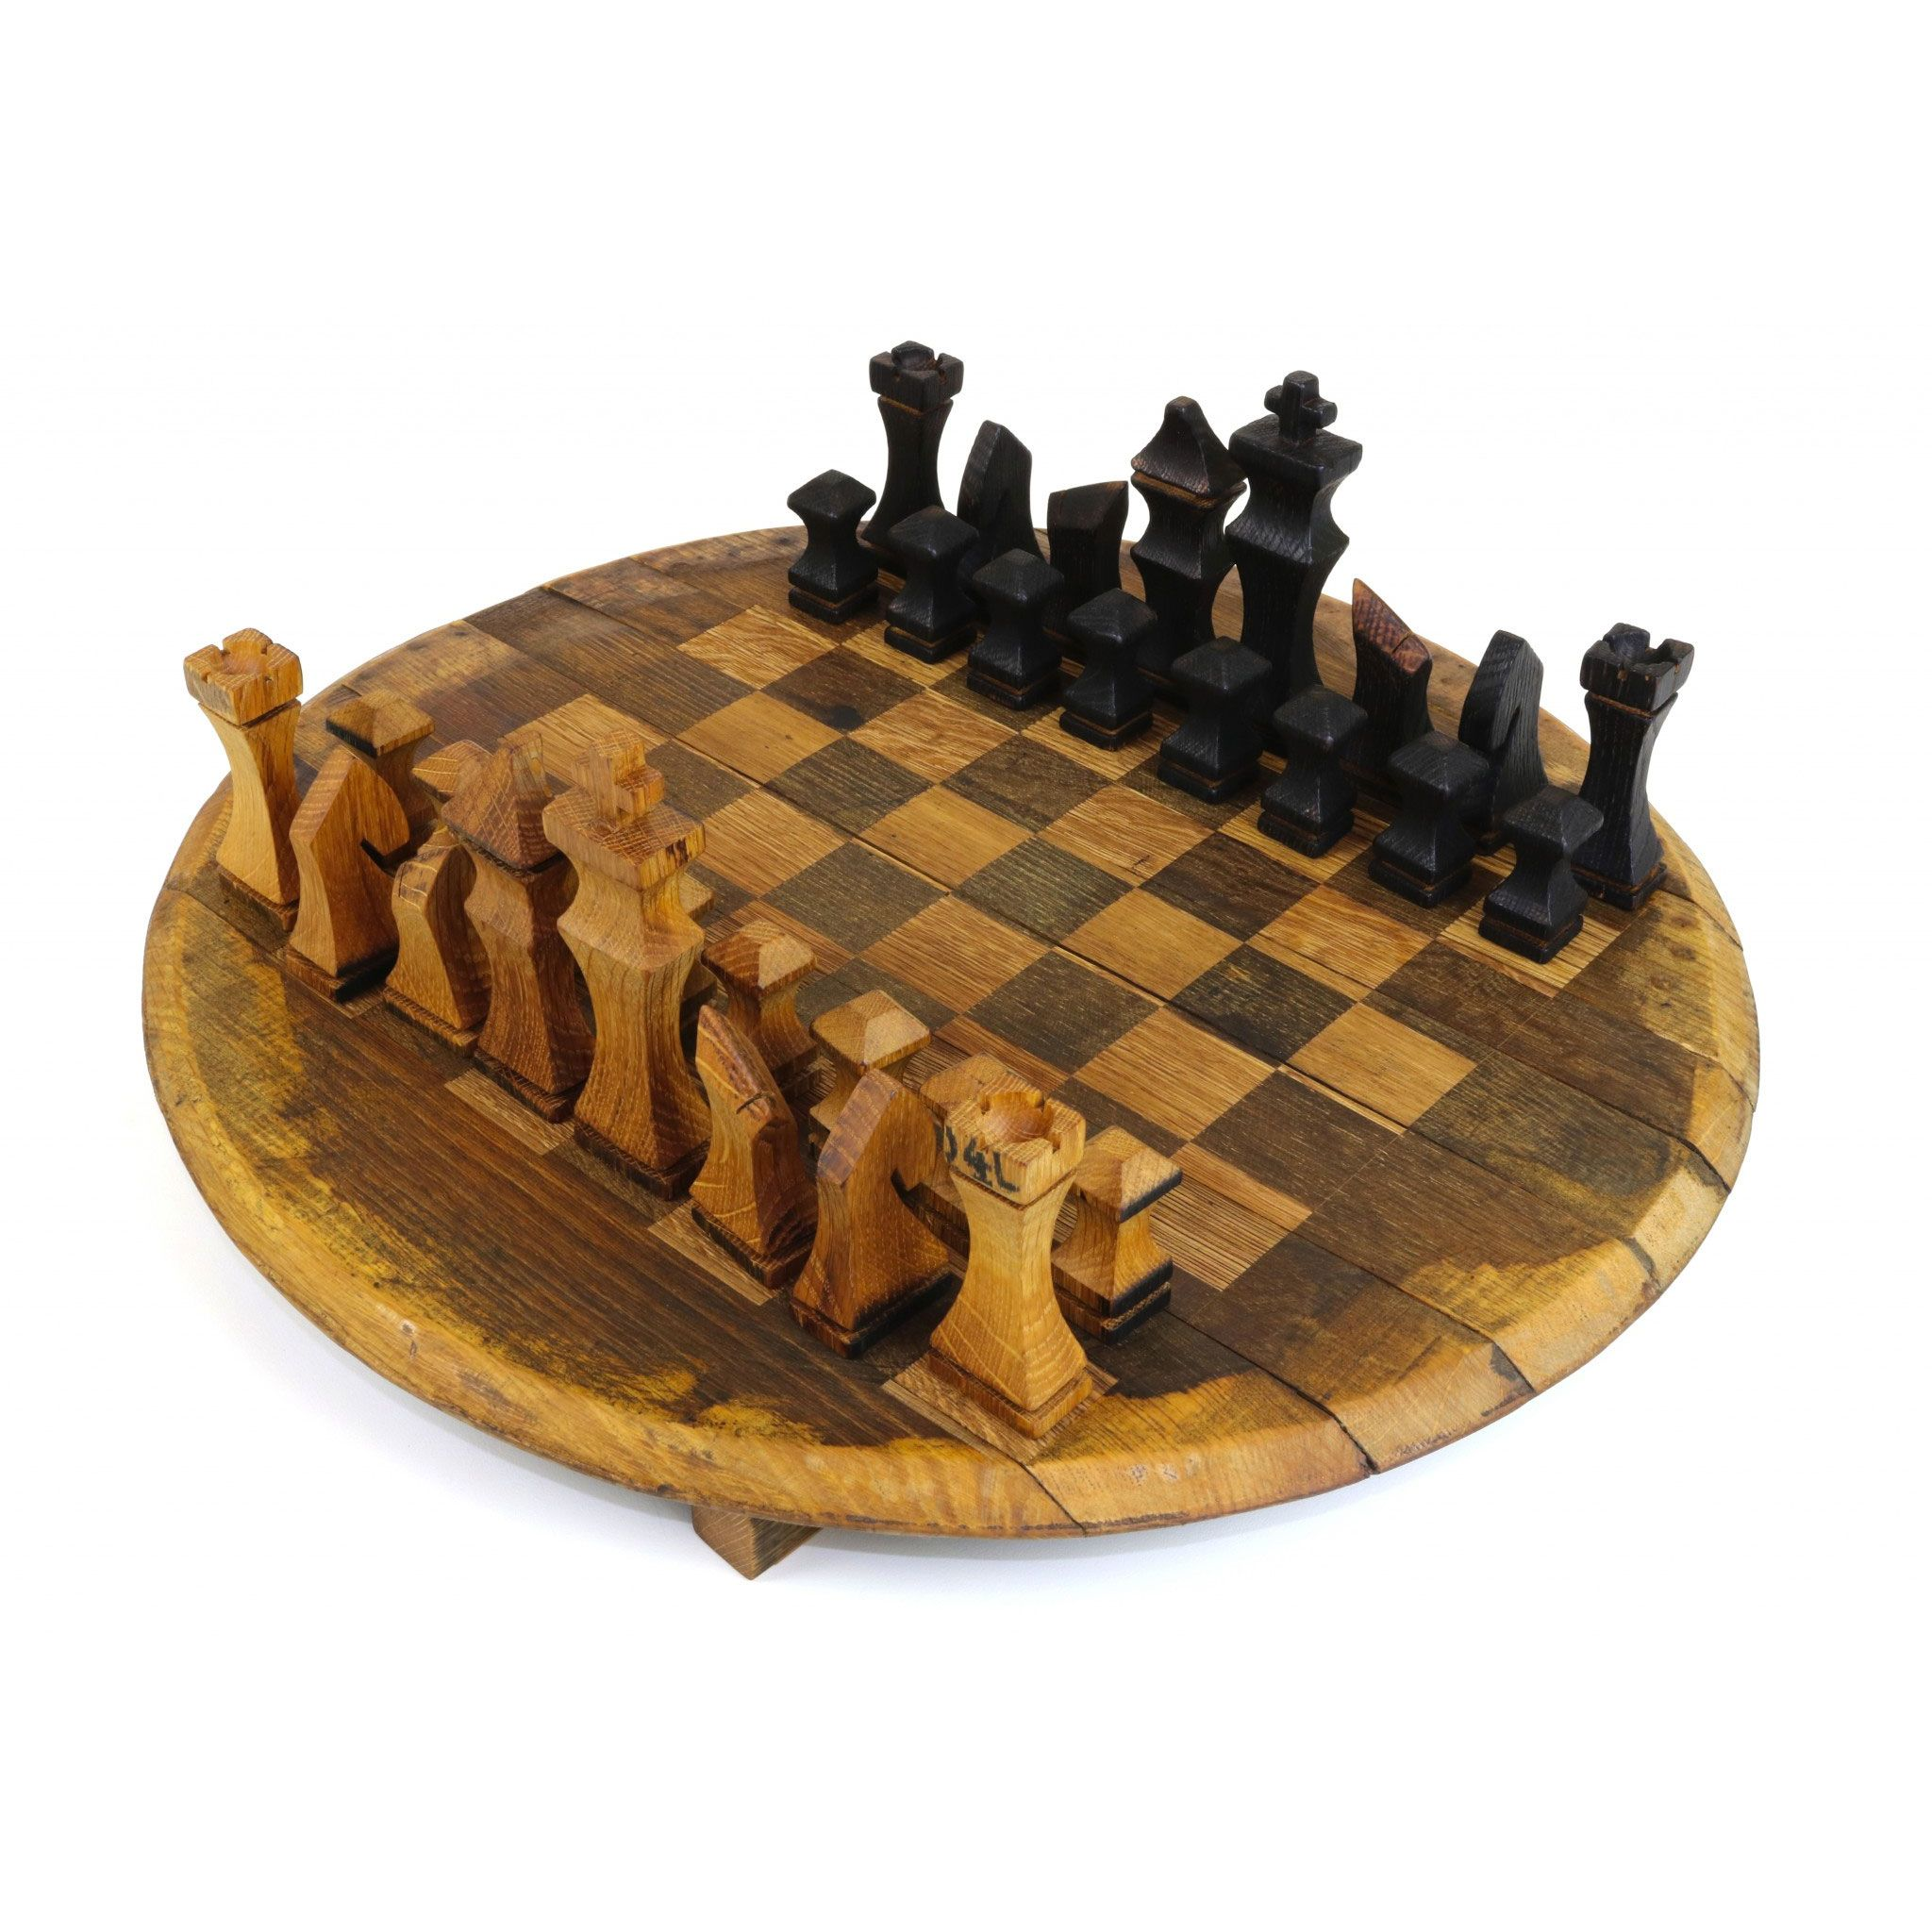 enjoyable ideas cheap chess sets. The Bourbon Barrel Chess Set is made of 100  used and reclaimed barrels An eco friendly art piece that will be loved enjoyed by both Whiskey lovers